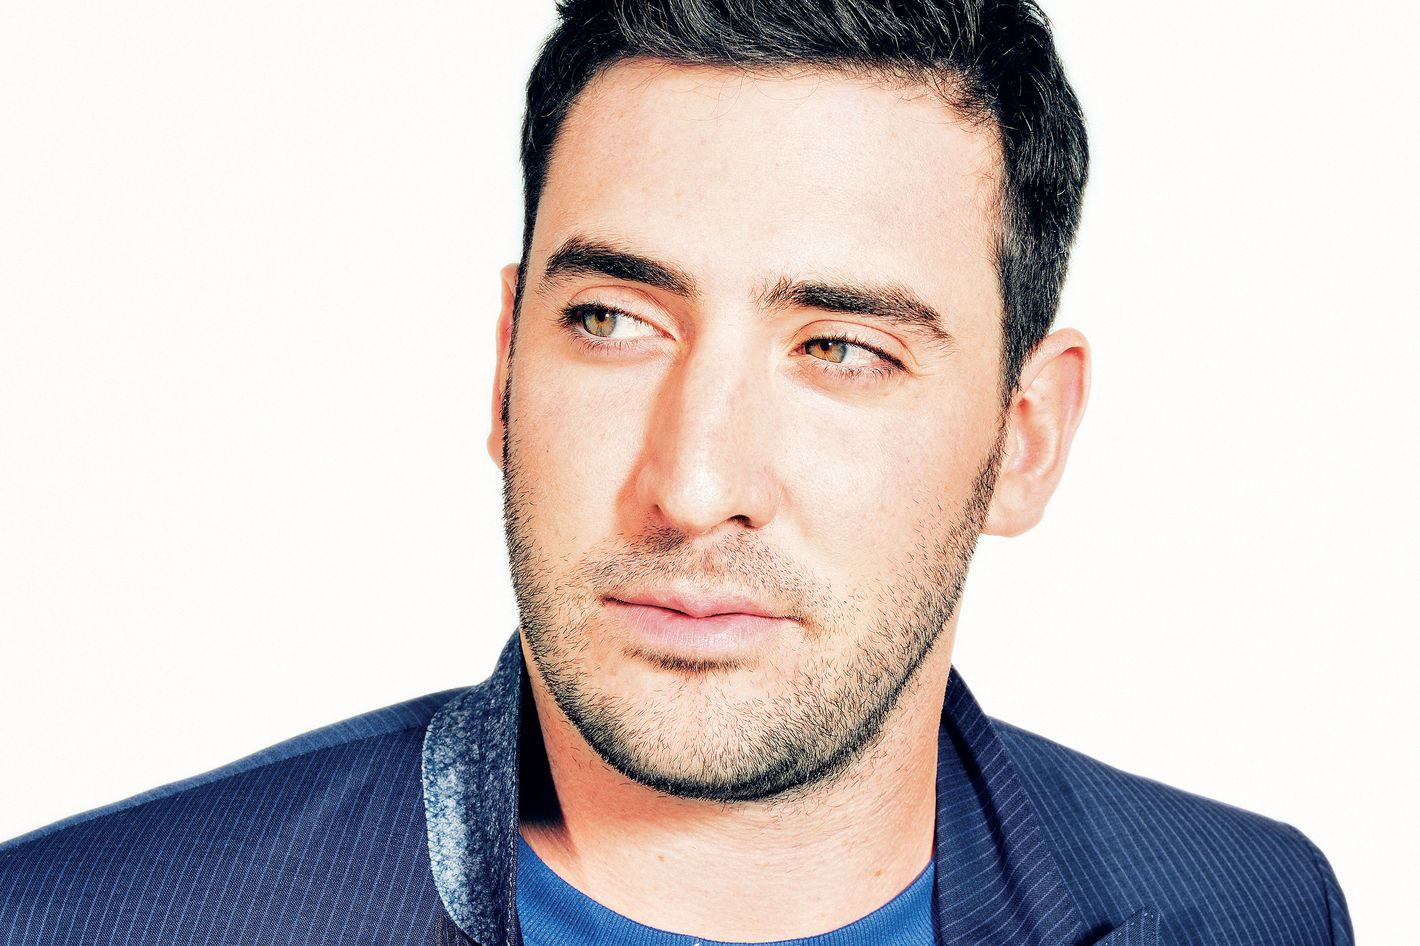 New York Mets pitcher Matt Harvey